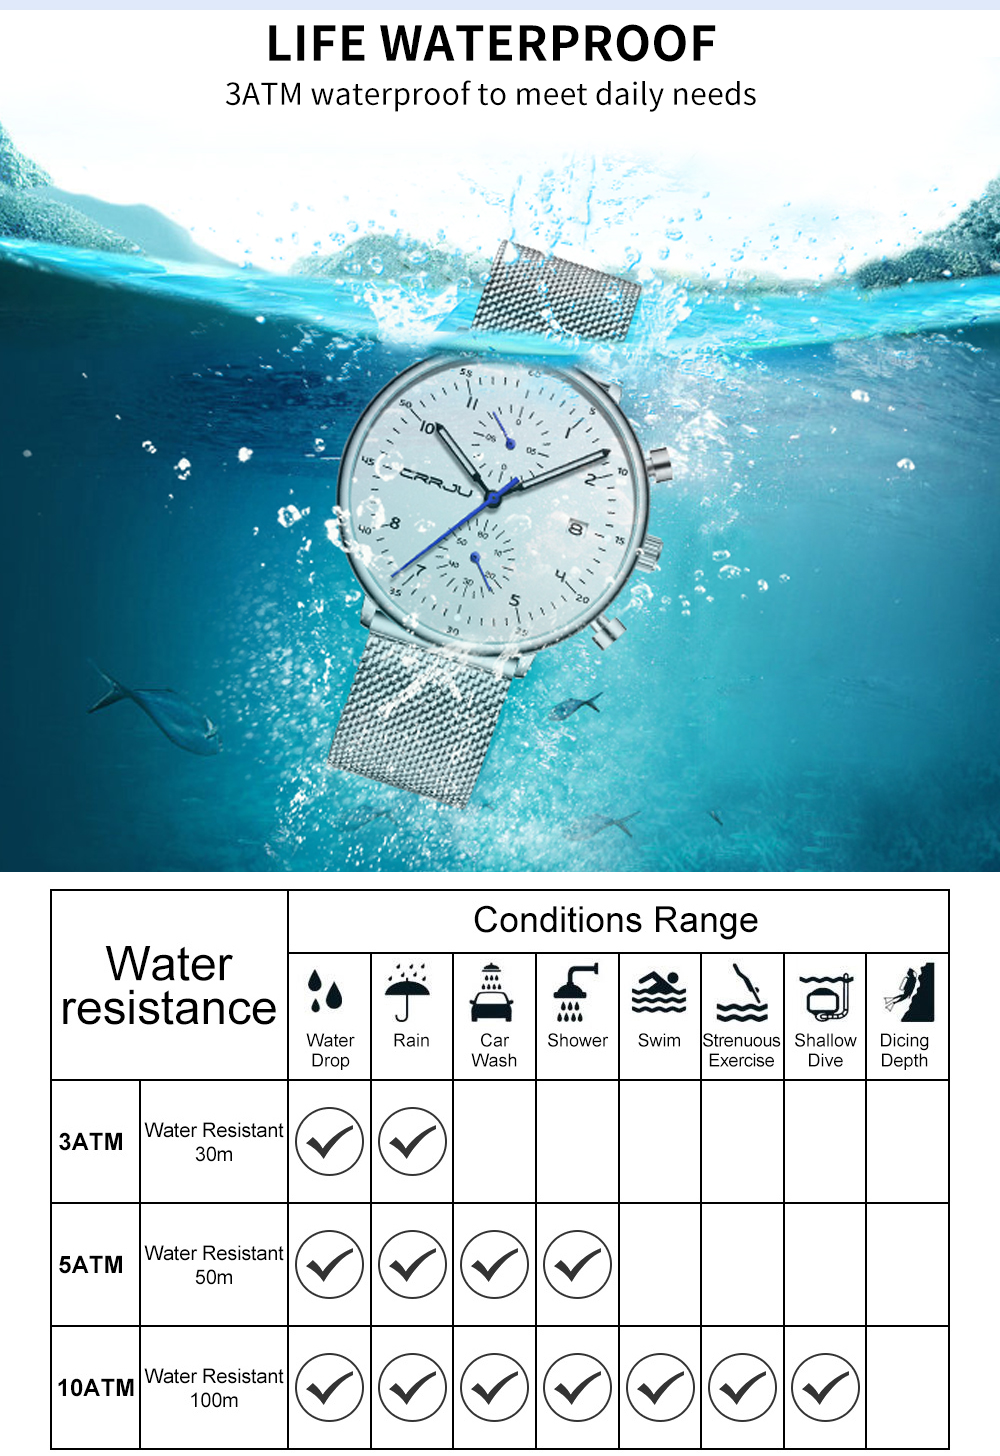 Mens Watch CRRJU Luxury Top Brand Men Stainless Steel WristWatch Men's Military waterproof Date Quartz watches relogio masculino H39df632d037d4033a1c31eeecb1c1f8au